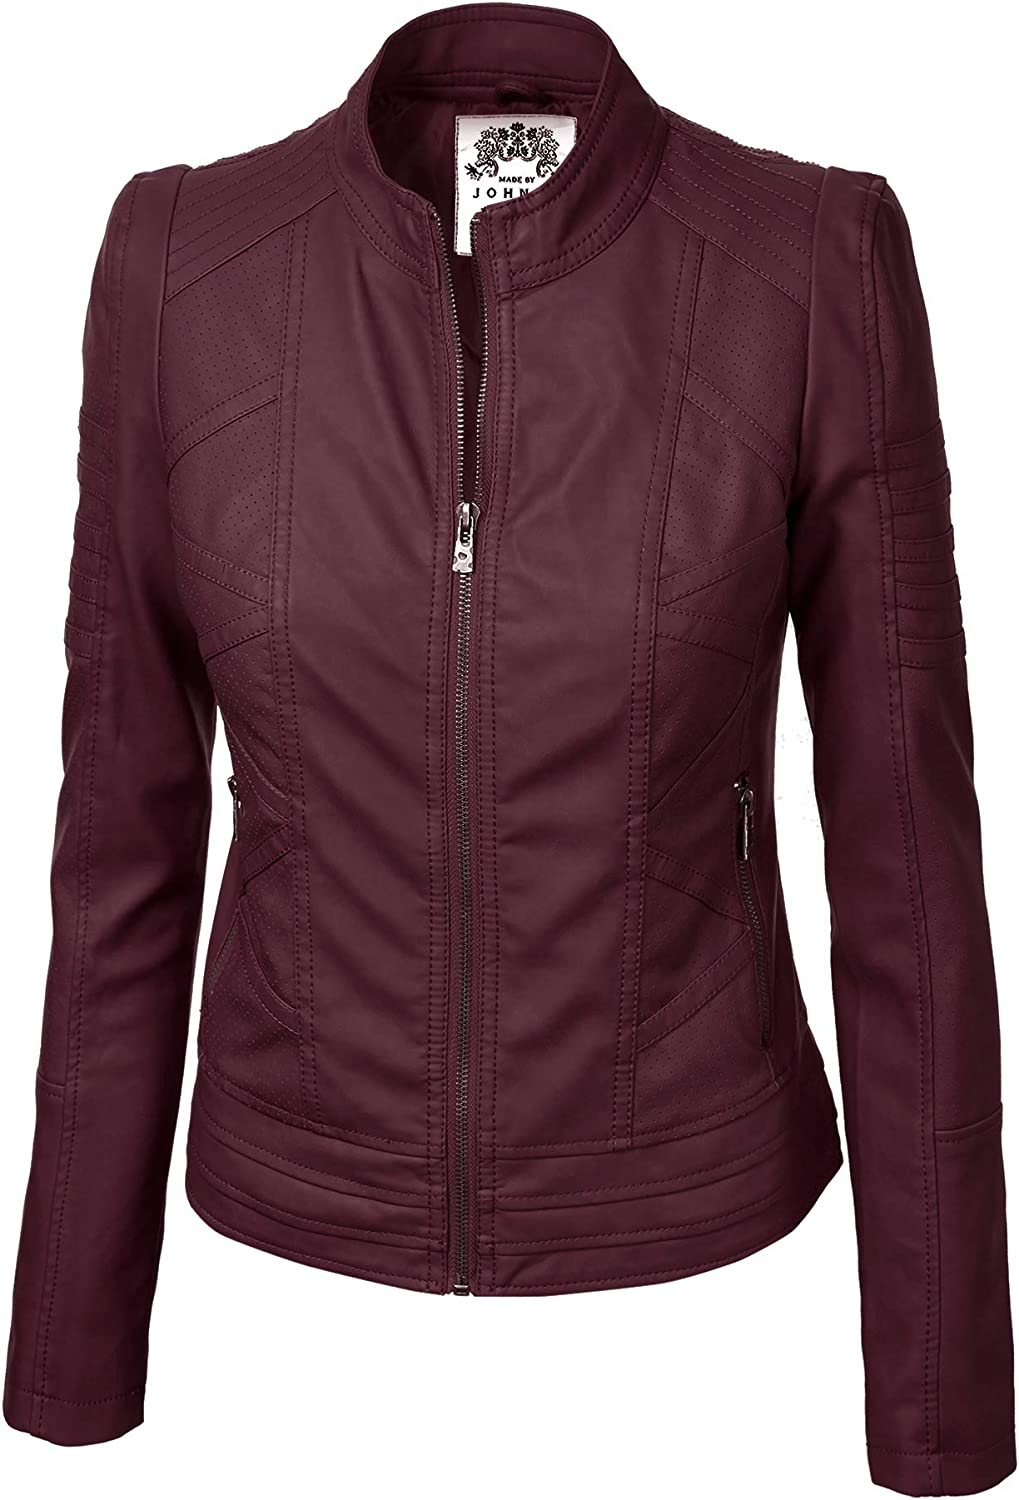 Made By Johnny MBJ WJC746 Womens Vegan Leather Motorcycle Jacket L Wine